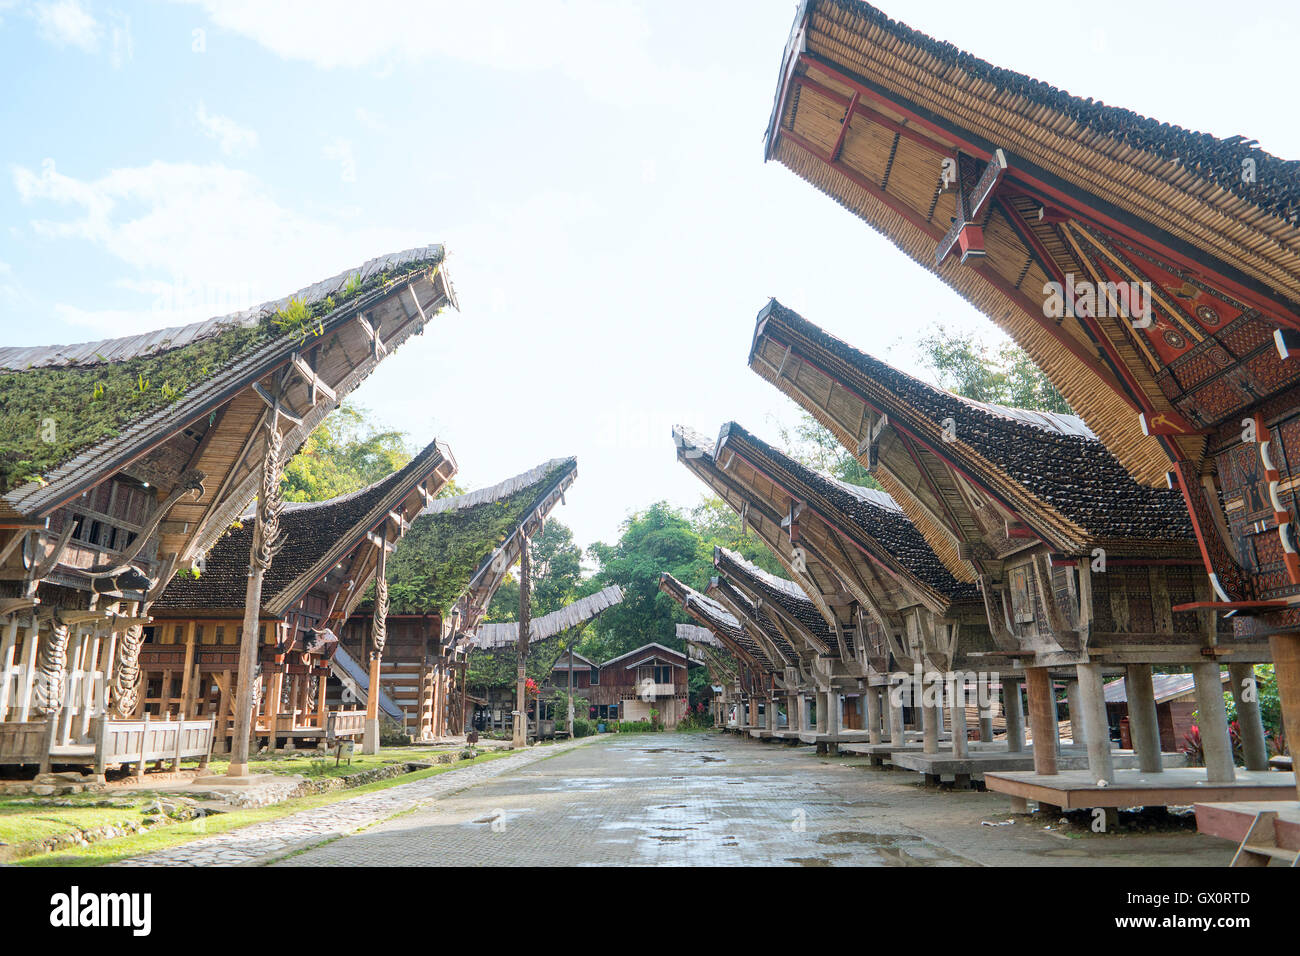 Tongkonan houses, traditional Torajan buildings and house located at Ke'Te Kesu - Stock Image